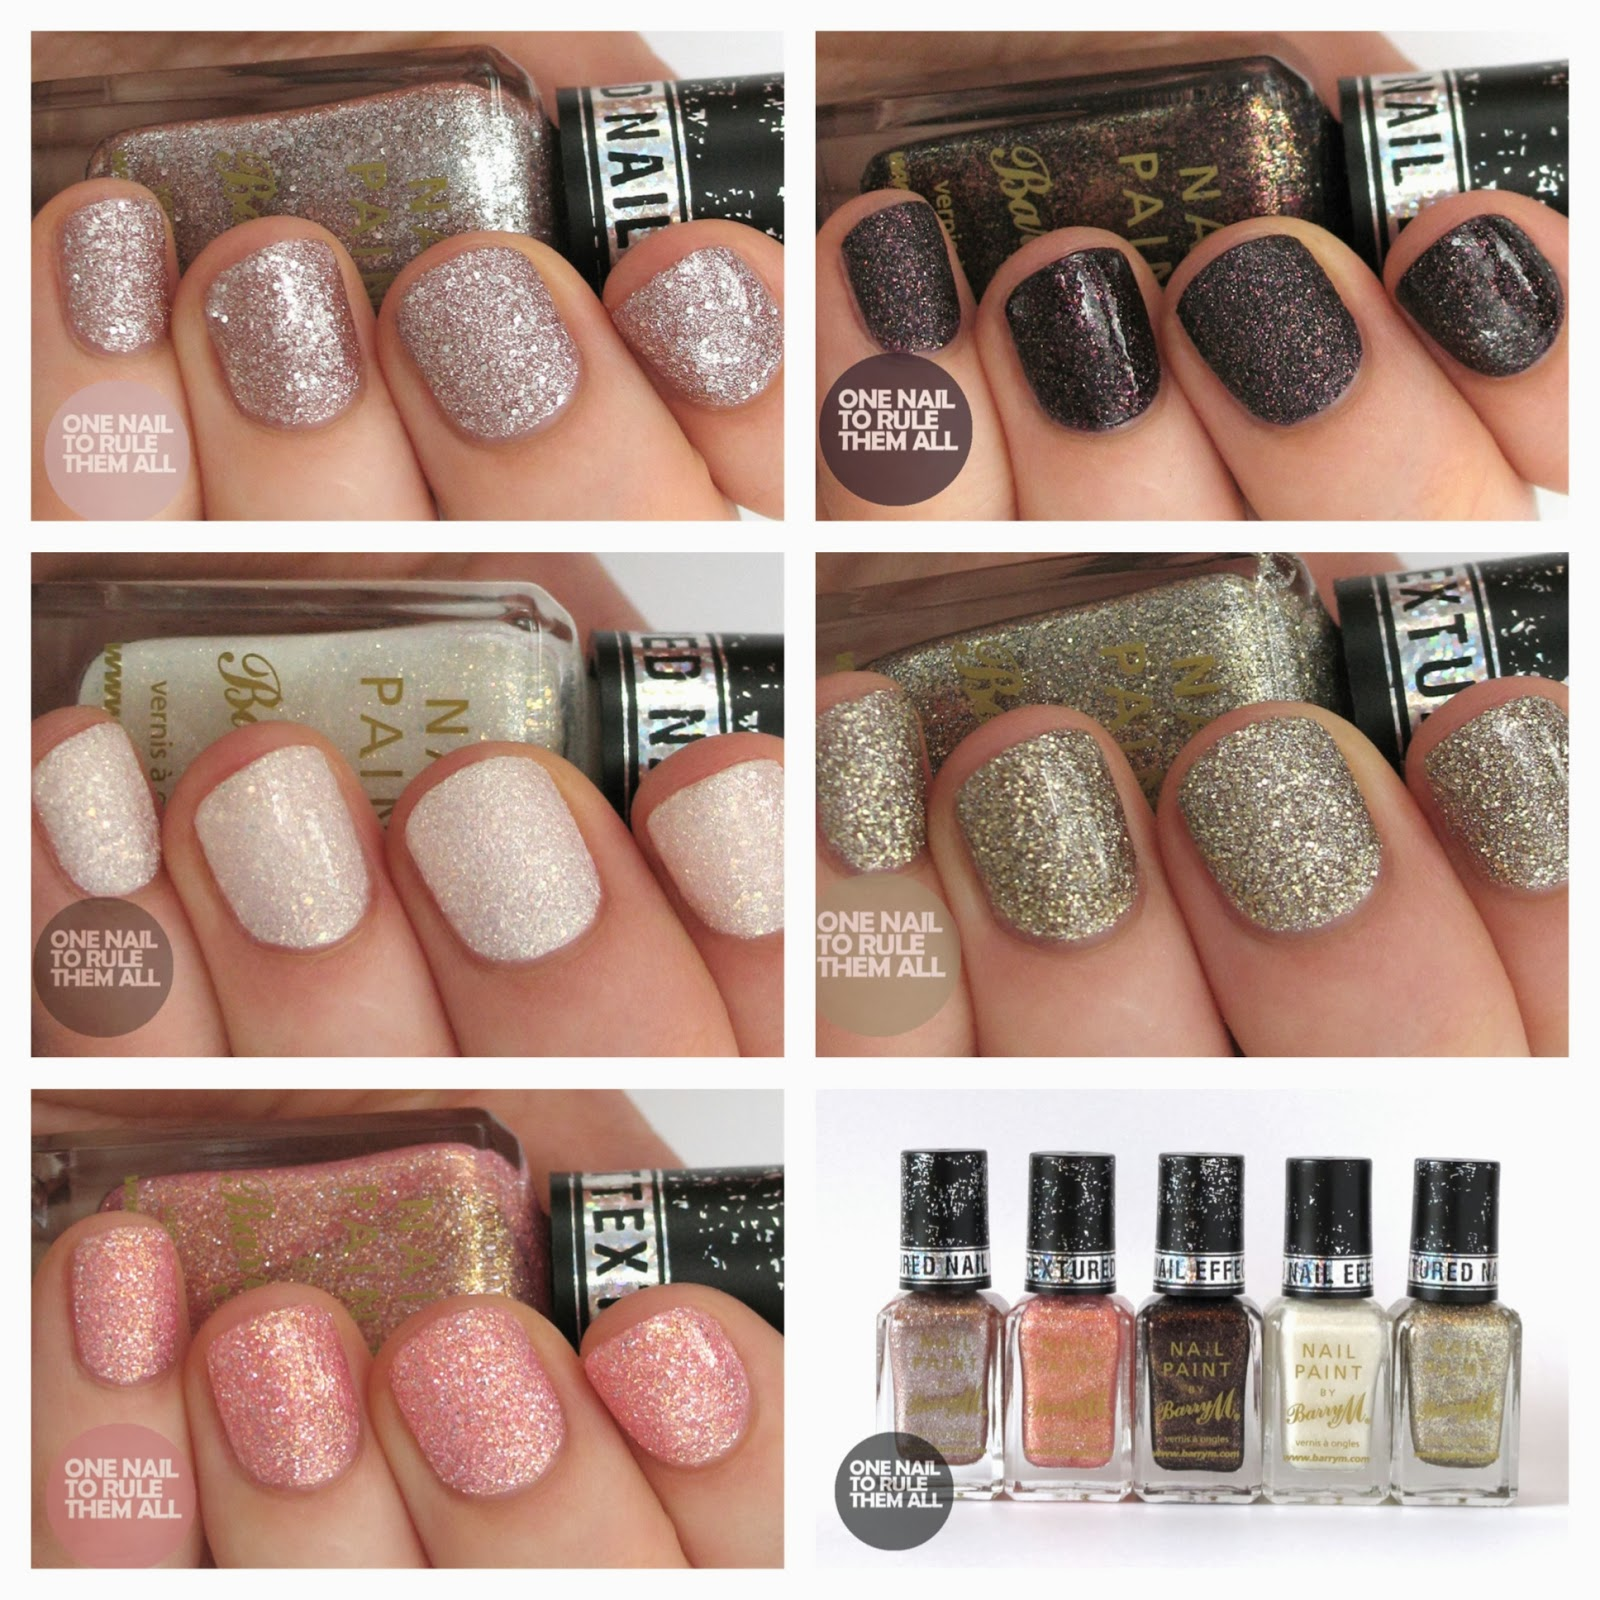 Barry M Autumn/Winter 2013 Royal Glitter Nail Polish Collection ...